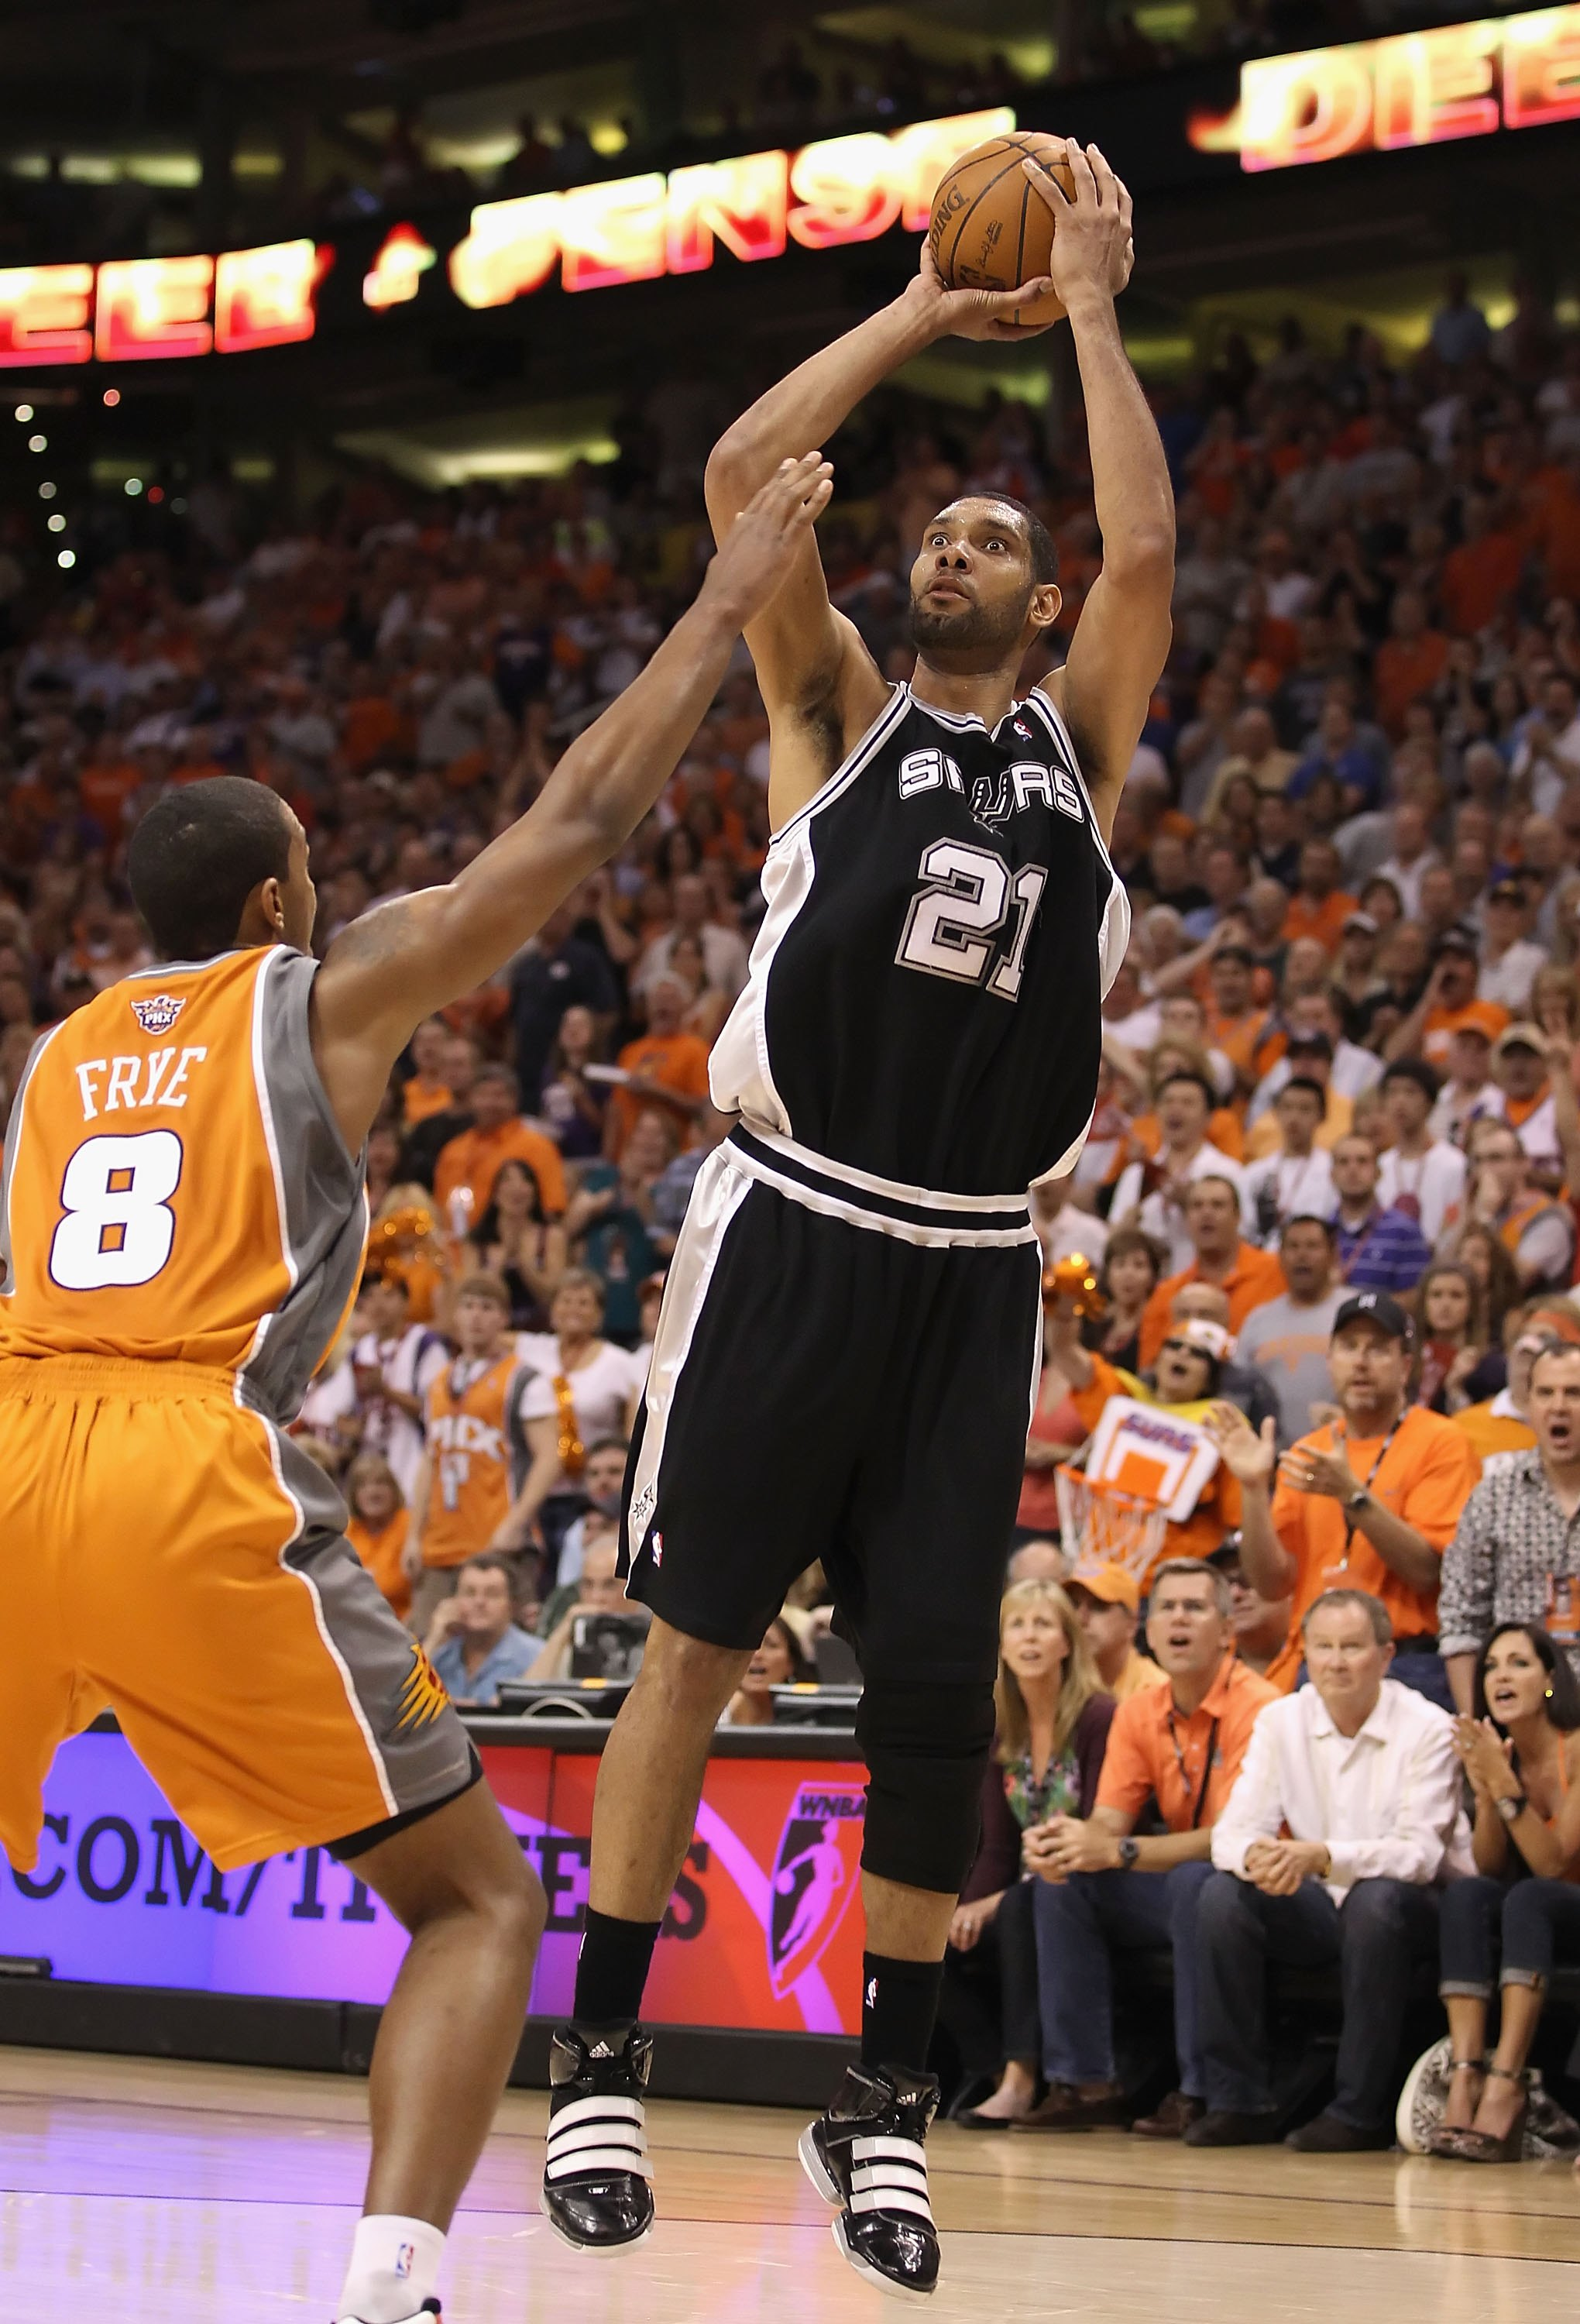 PHOENIX - MAY 05:  Tim Duncan #21 of the San Antonio Spurs shoots the ball during Game Two of the Western Conference Semifinals of the 2010 NBA Playoffs against the Phoenix Suns at US Airways Center on May 5, 2010 in Phoenix, Arizona. The team is wearing